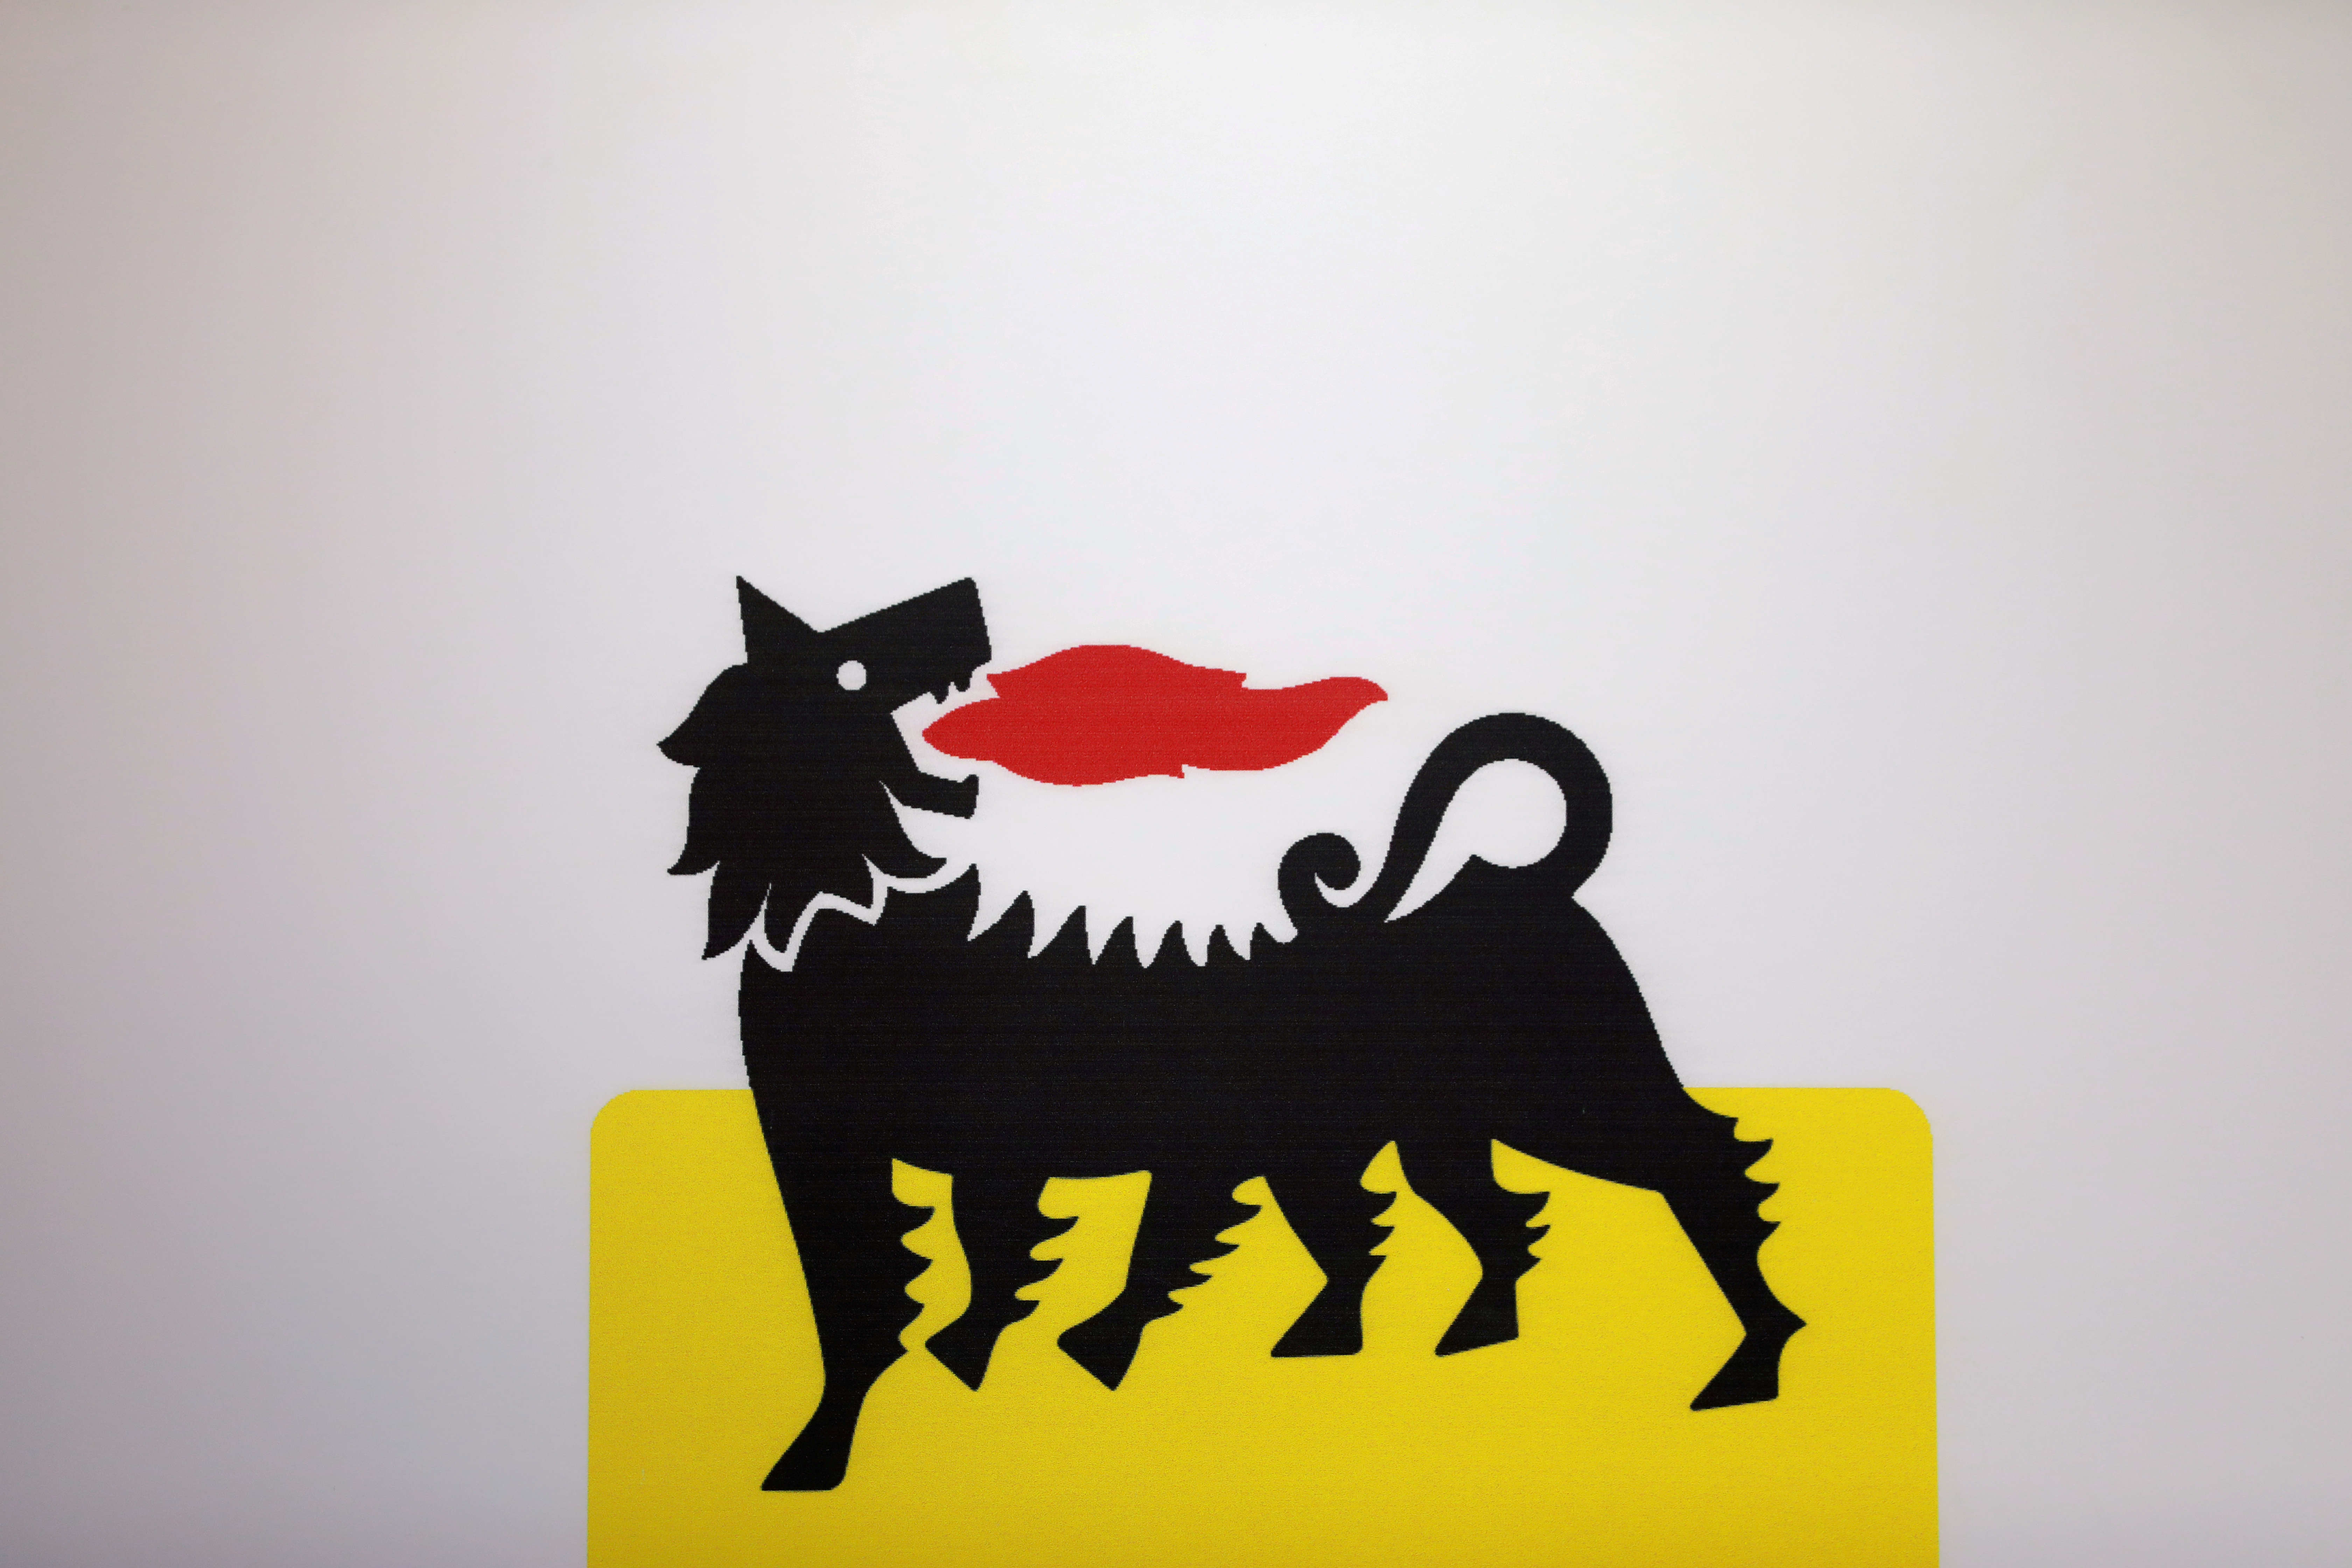 The logo of Italian energy company Eni is seen at the booth of Eni during the Nigeria International Petroleum Summit in Abuja, Nigeria February 10, 2020. REUTERS/Afolabi Sotunde